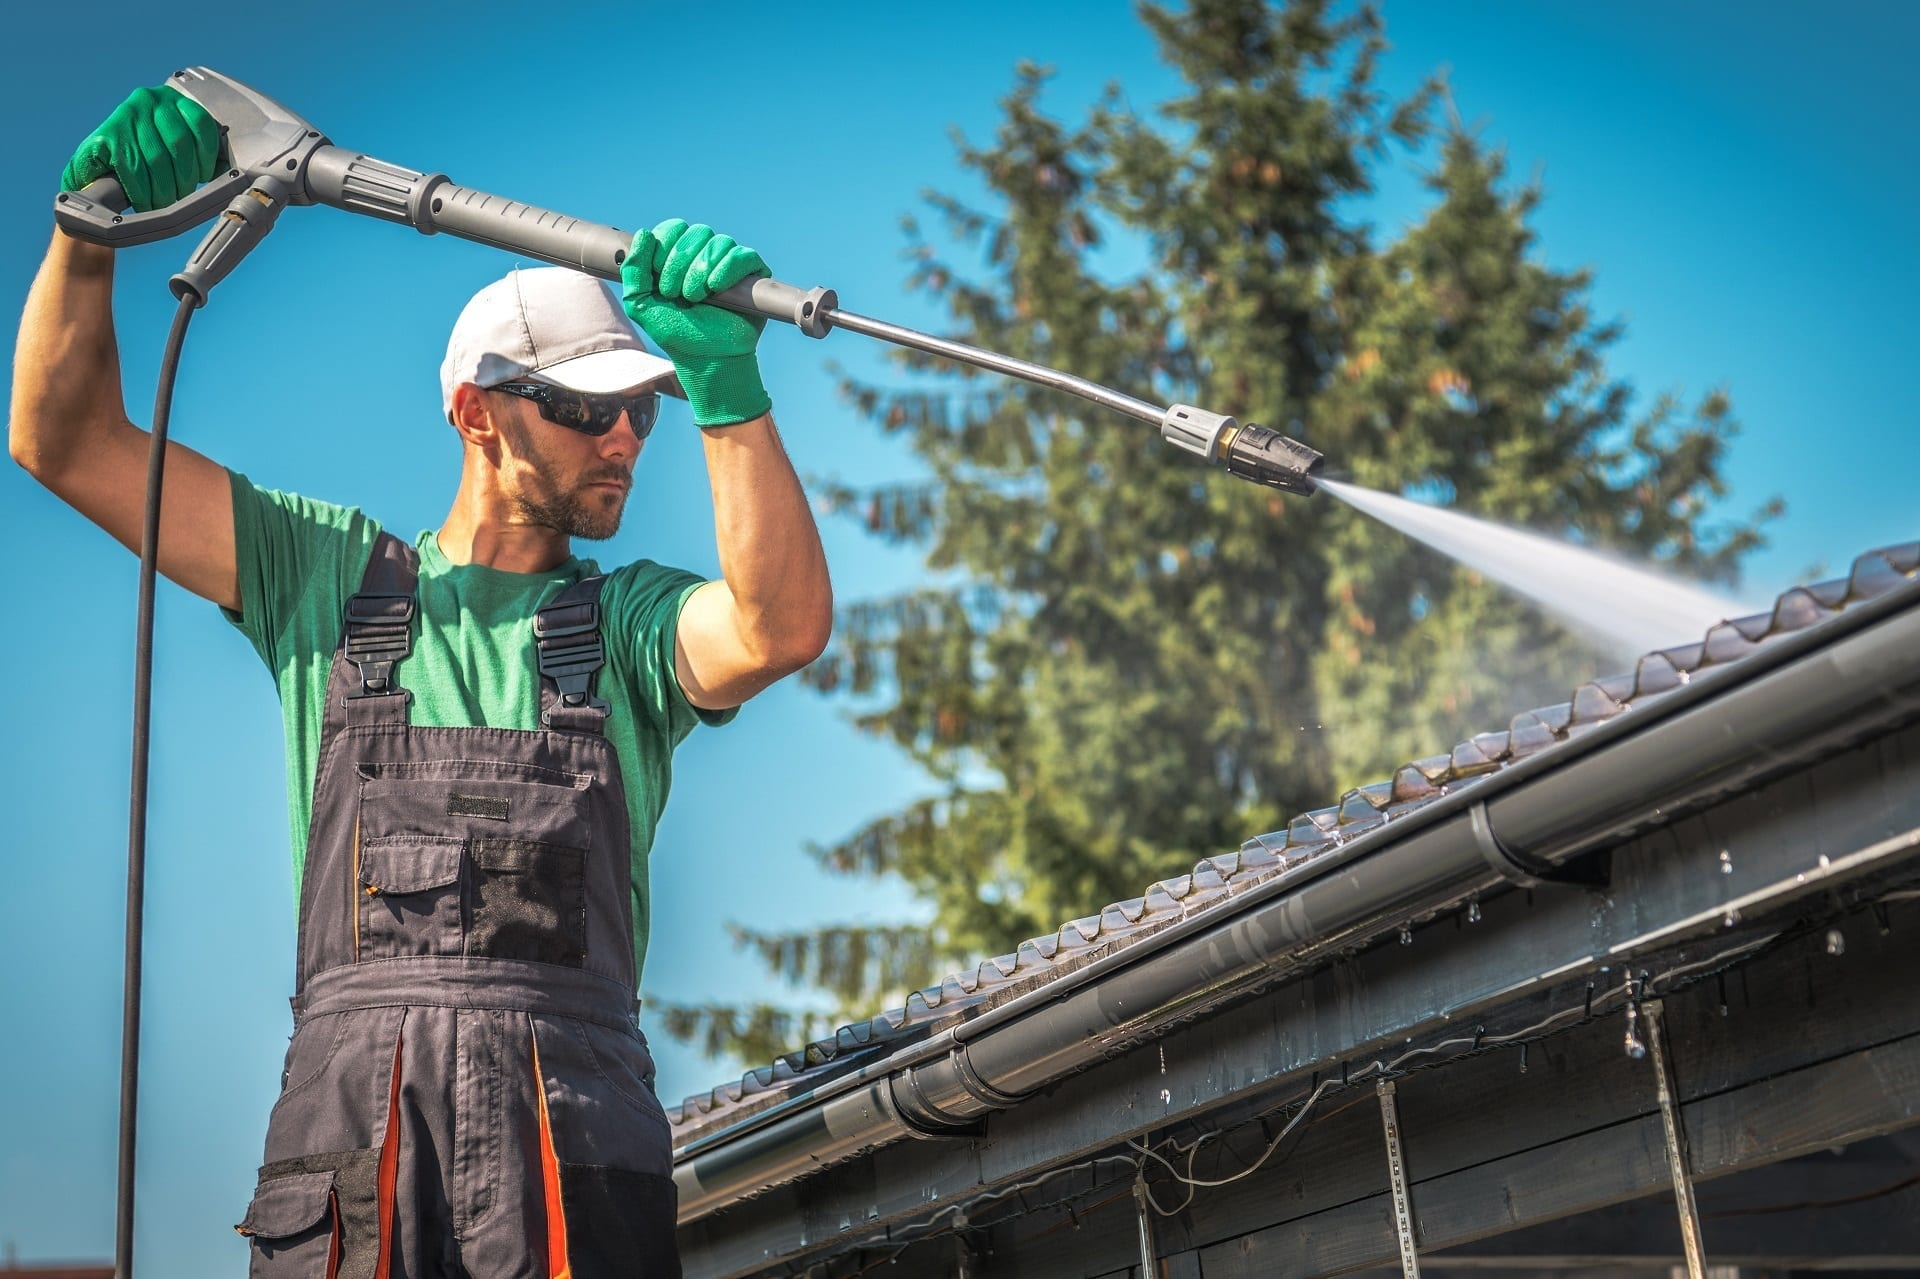 power-washing-roof-roofing-repairs | Claw Roofing Calgary